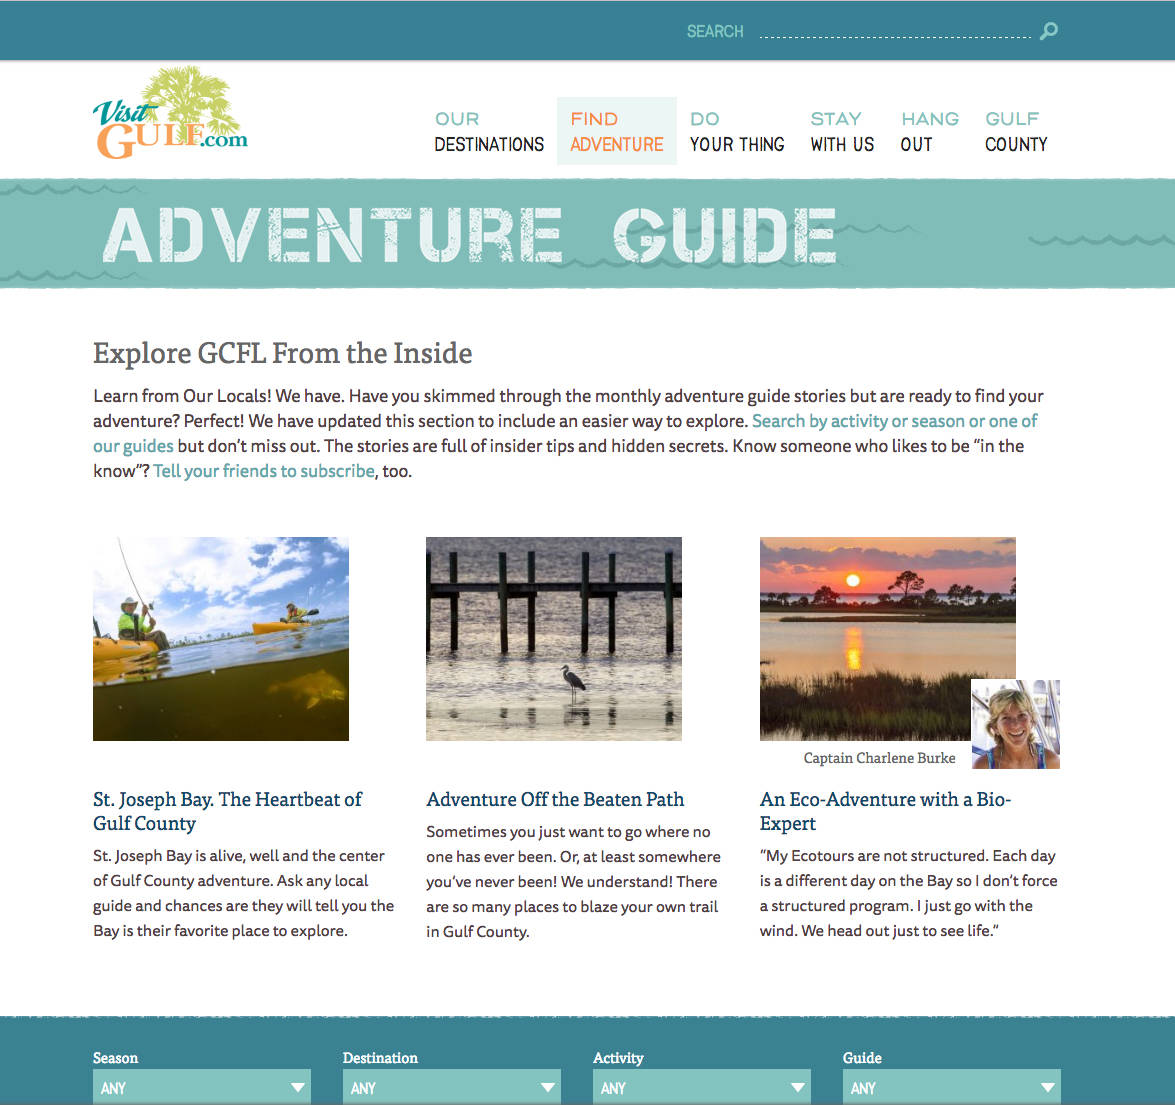 Have and plan your adventure with the Gulf County Adventure Guide.